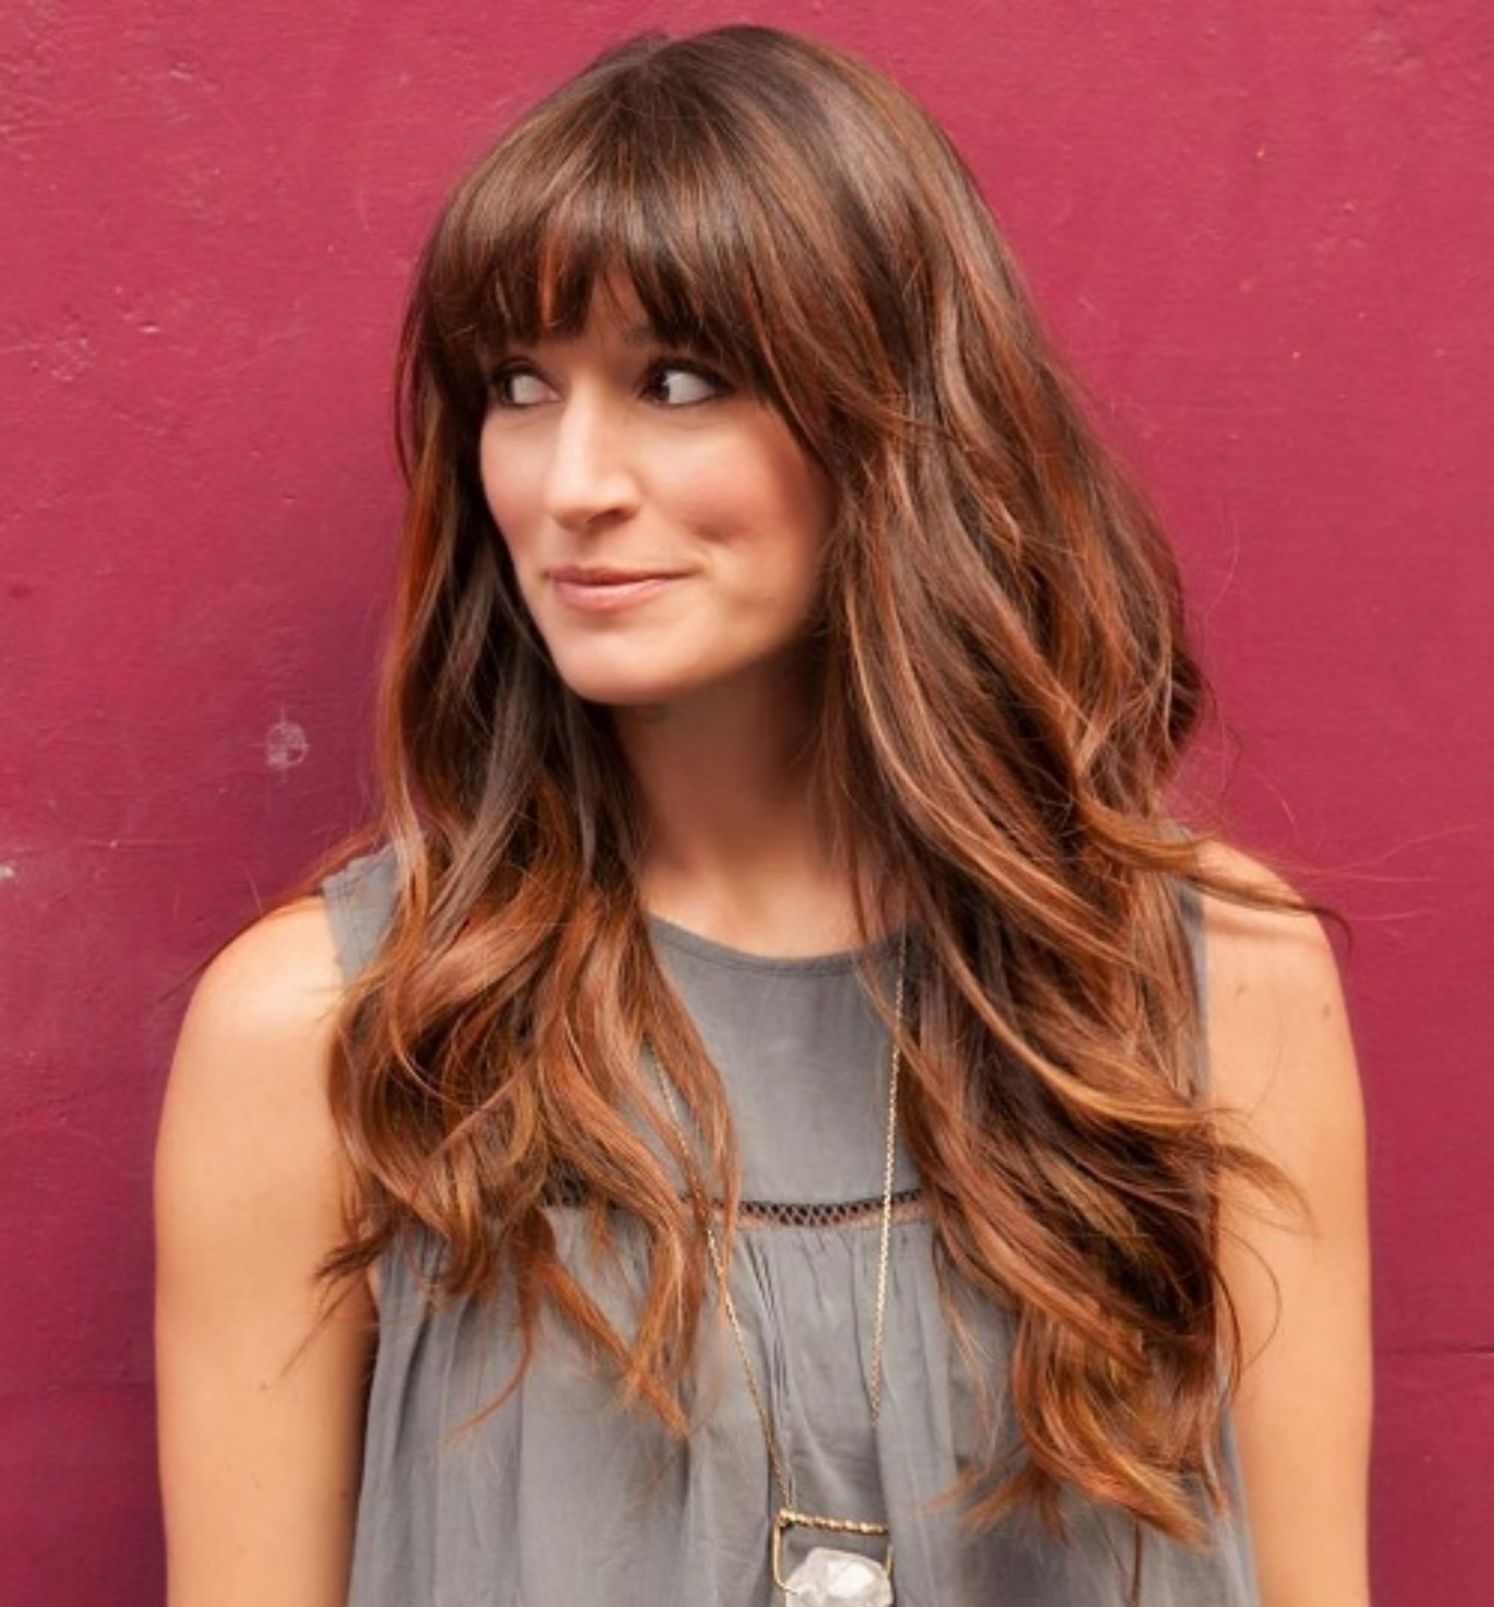 50 Best Hairstyles For Square Faces Rounding The Angles Long Hair